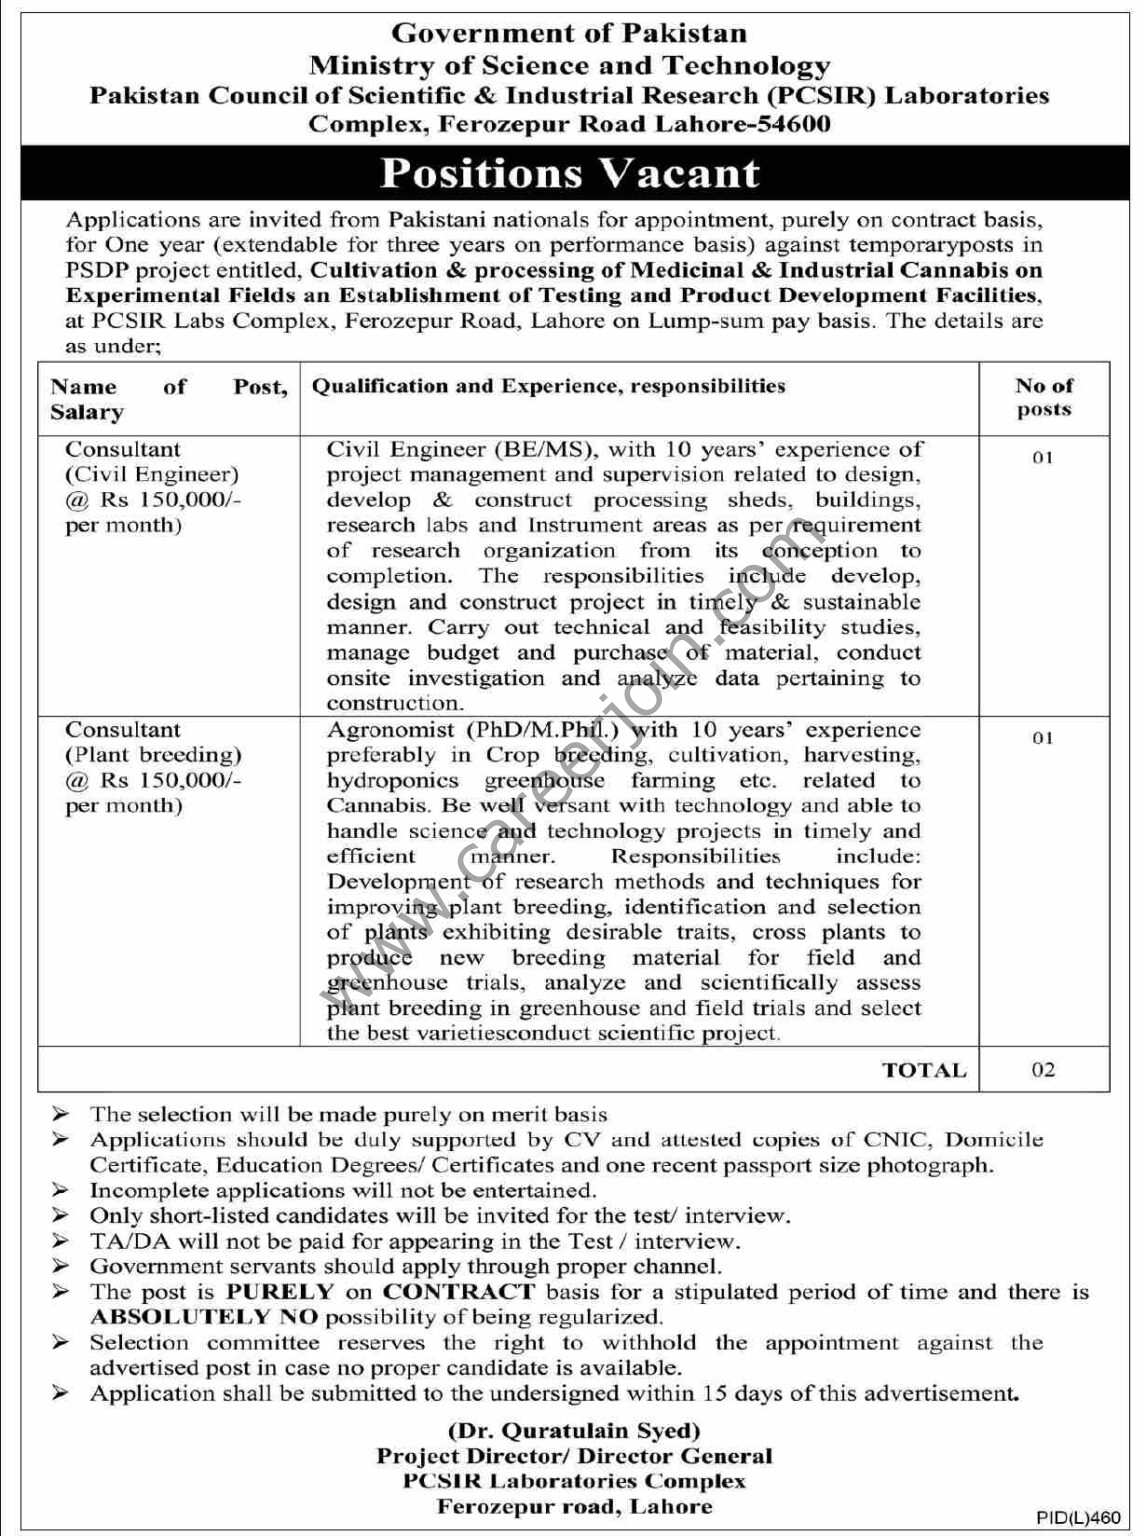 Ministry of Science and Technology Jobs 2021   Govt Jobs 2021 Pakistan